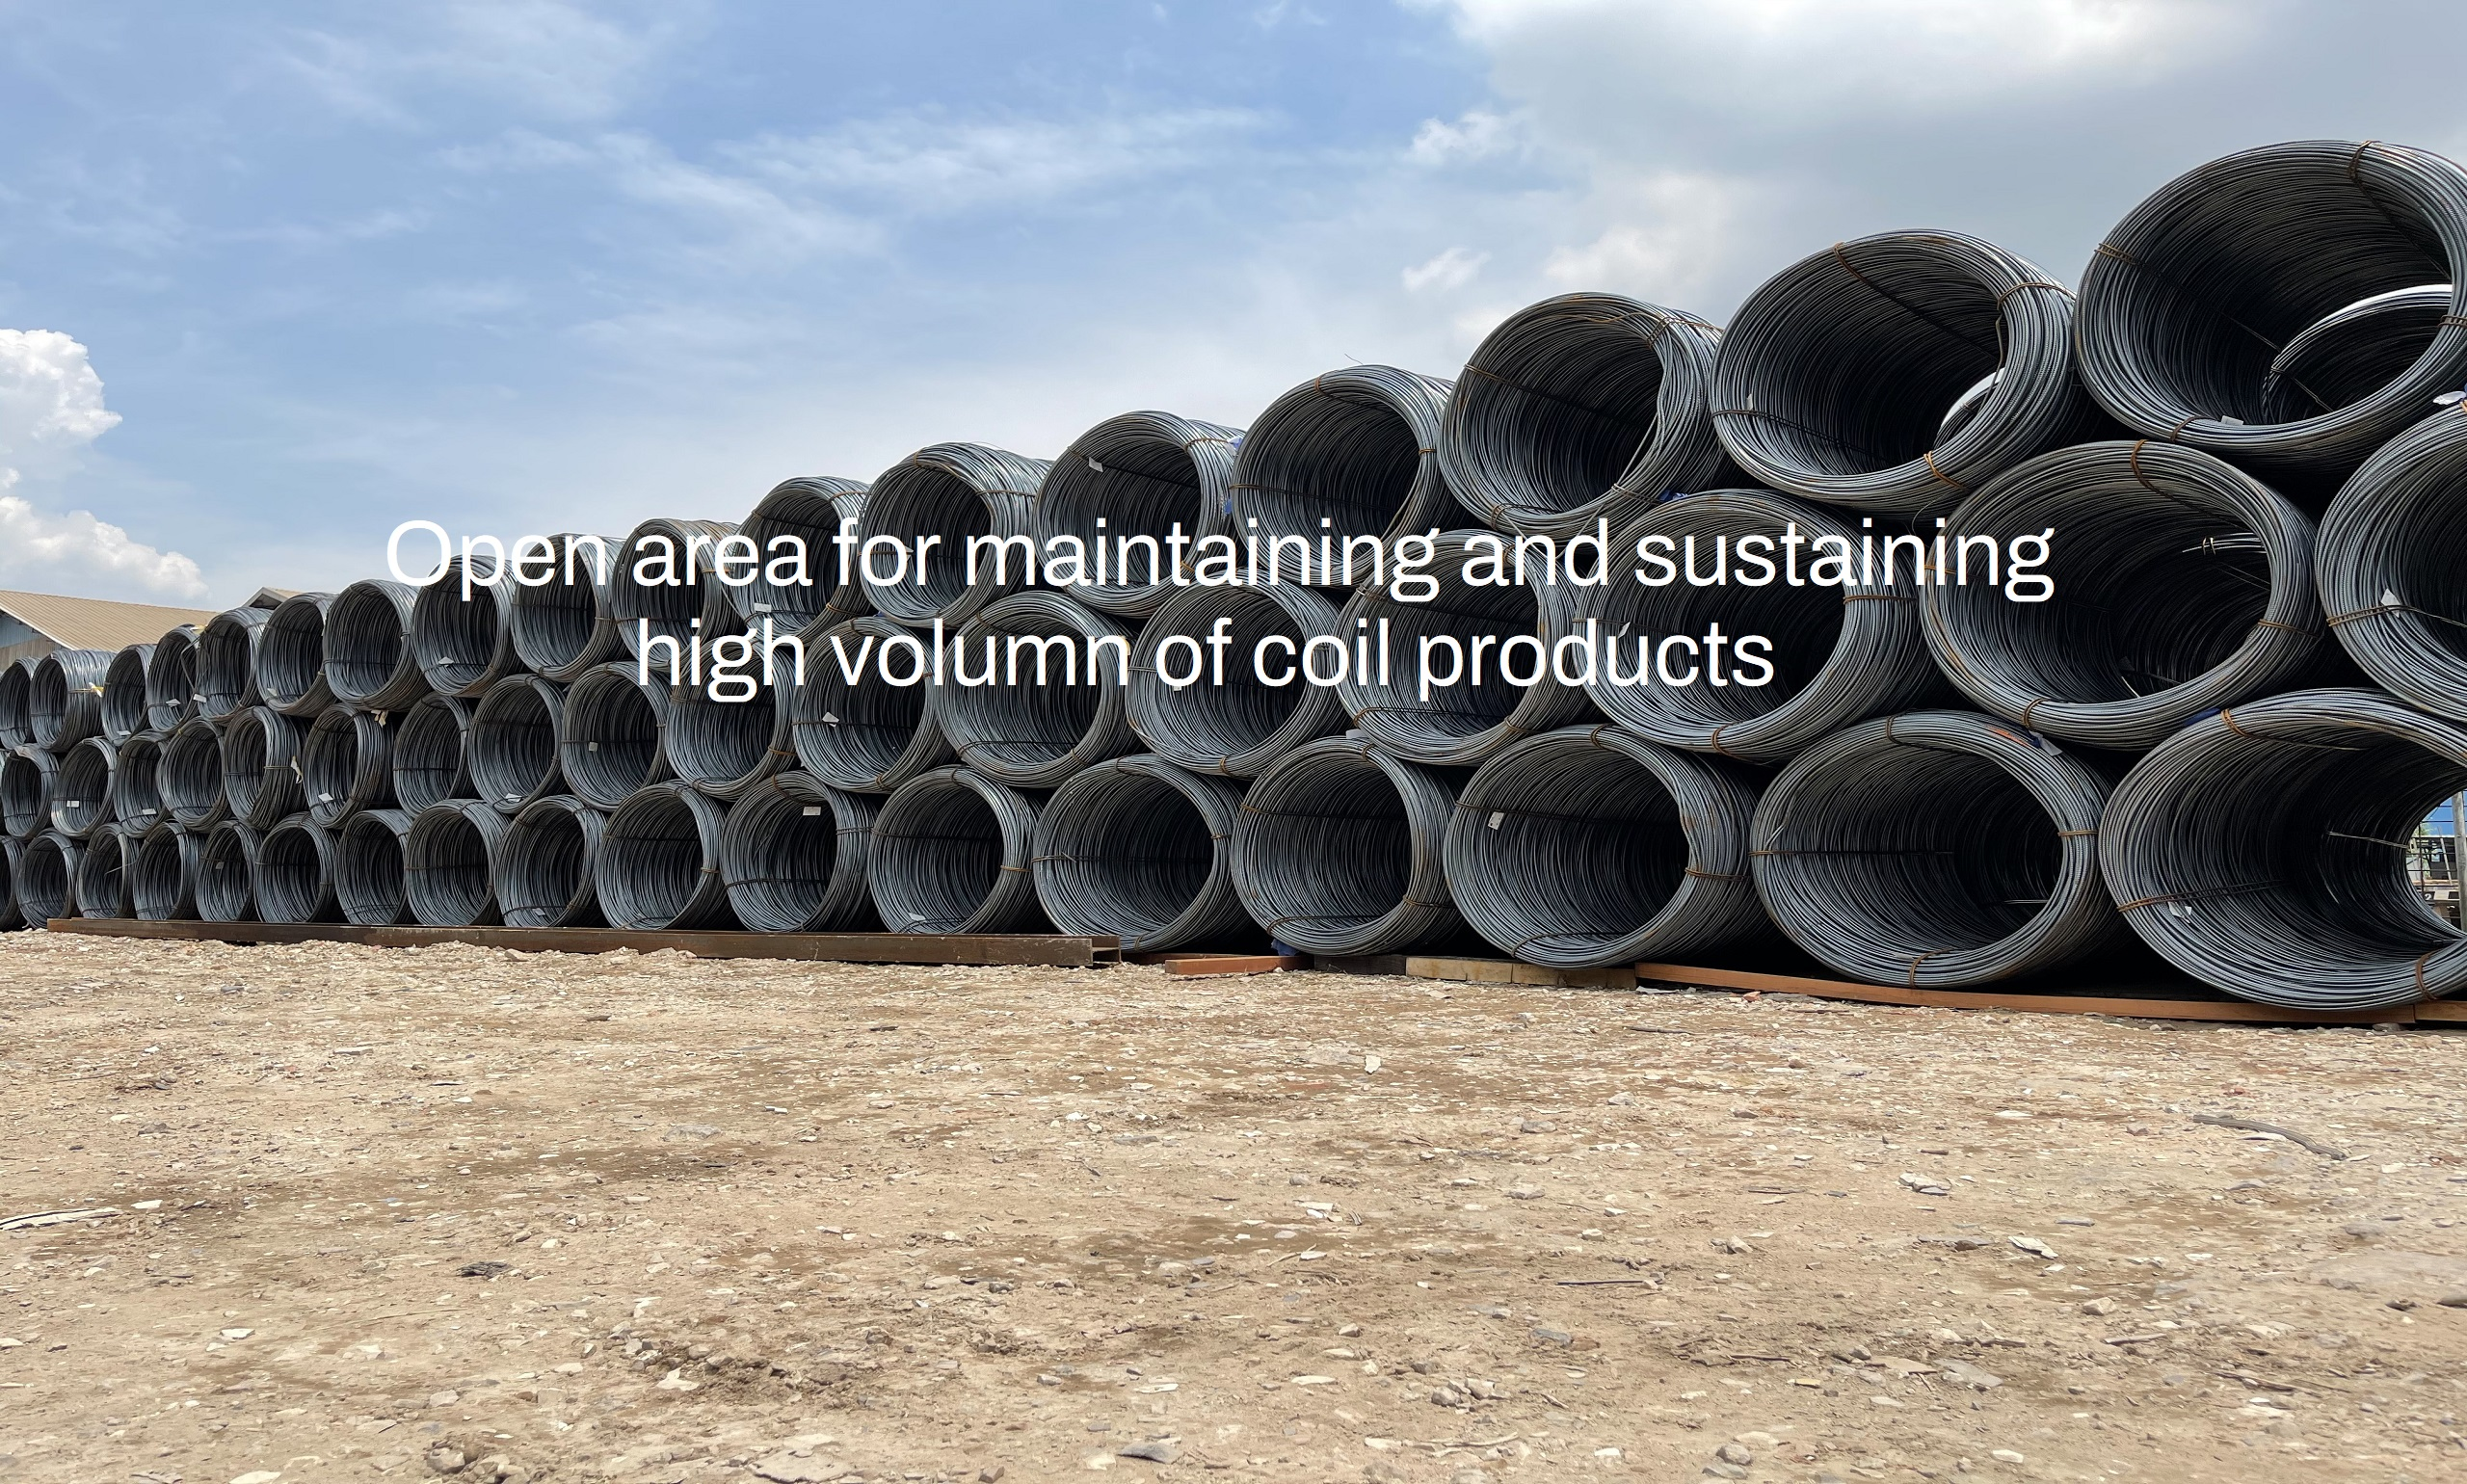 Open area for maintaining and sustaining high volumn of coil products